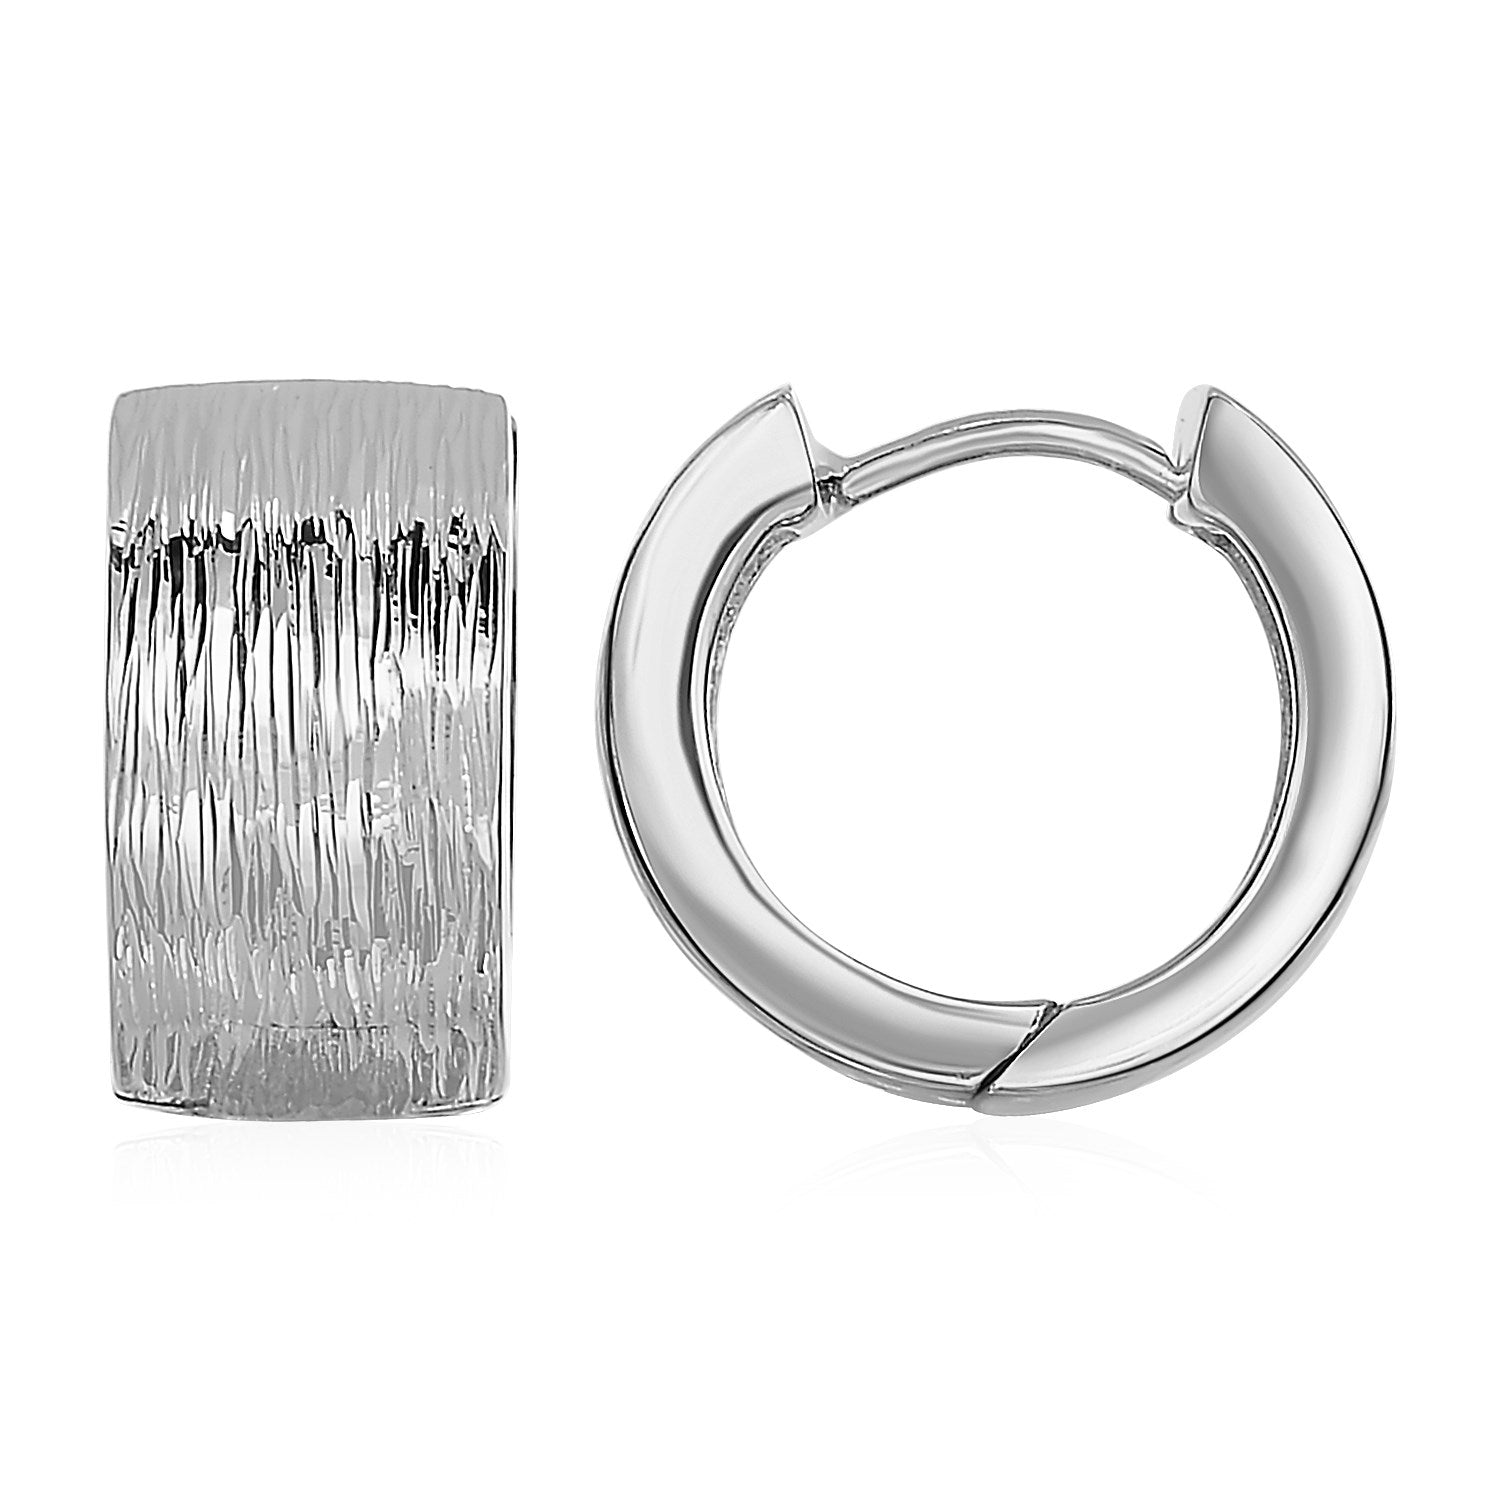 Textured Hoop Earrings with White Finish in Sterling Silver